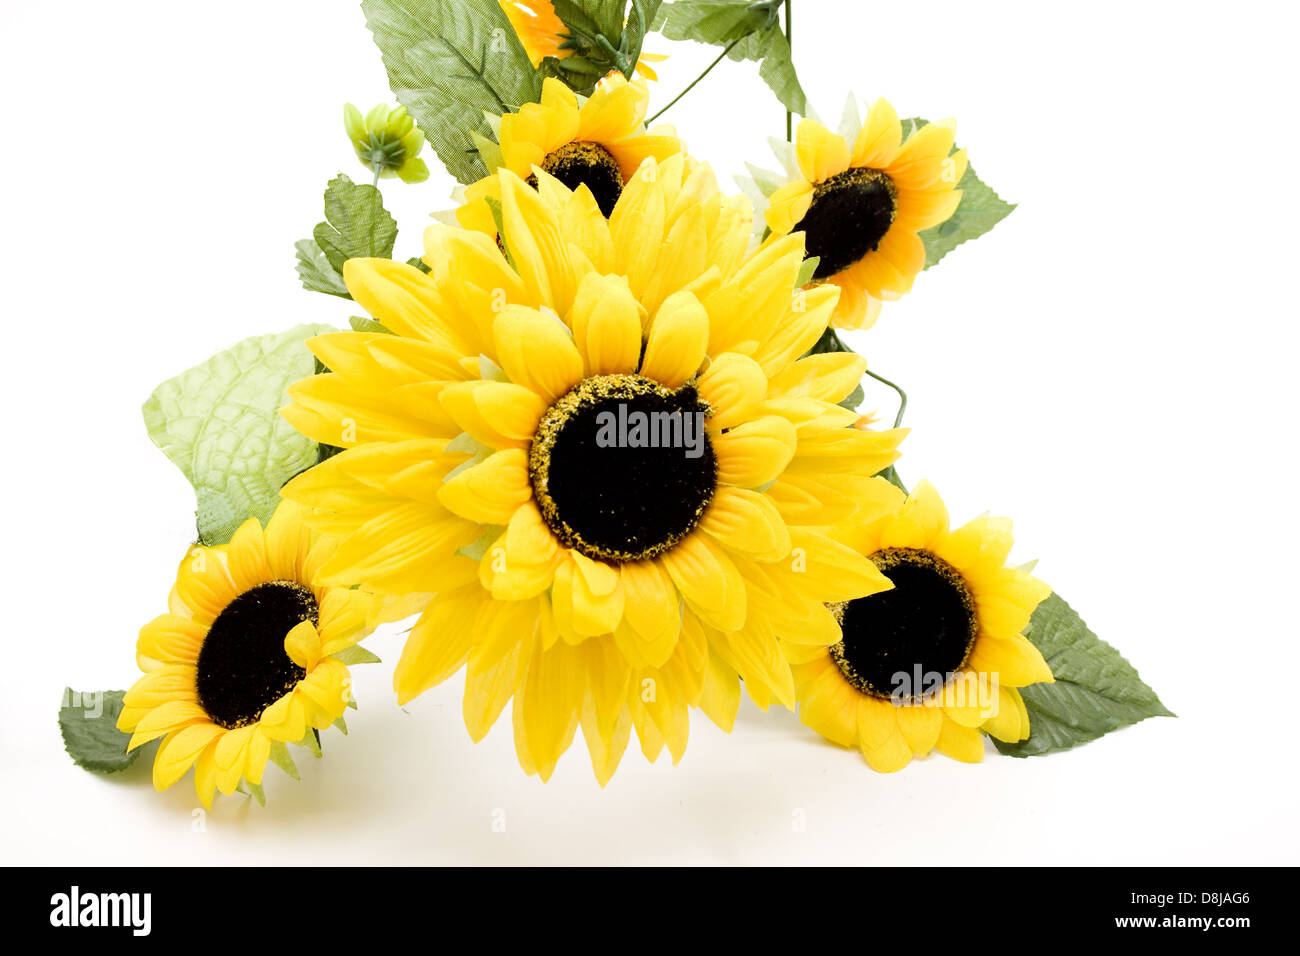 Blossoms of sunflowers - Stock Image